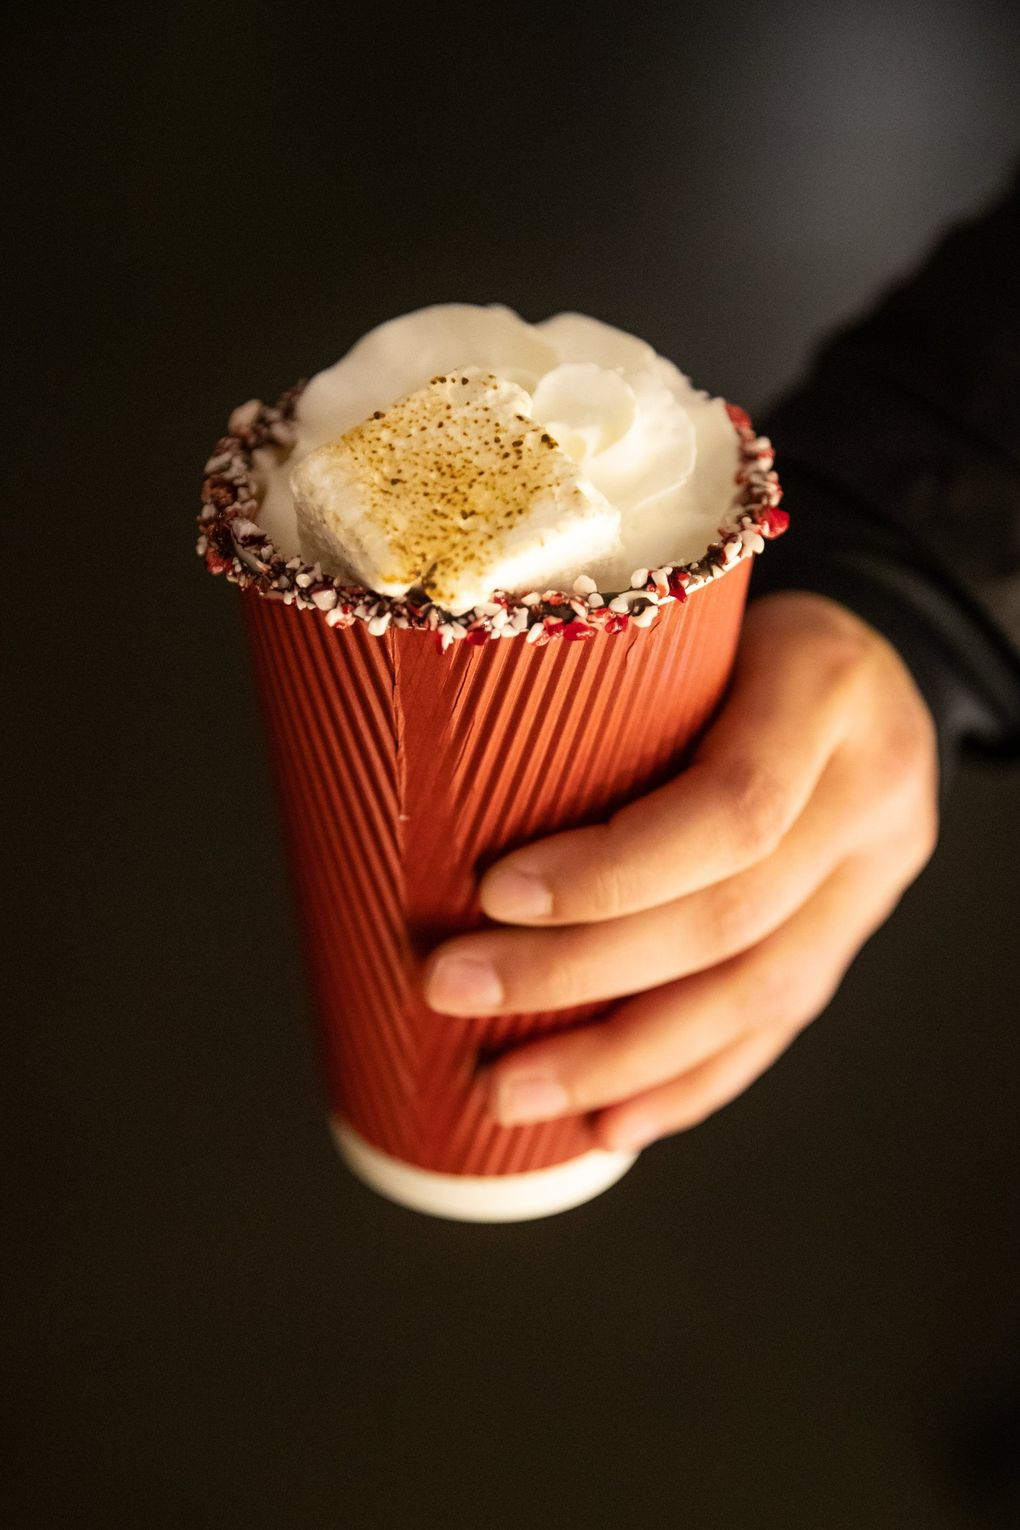 Hot chocolate topped with whipped cream and a toasted marshmallow goes for $8 at Enchant Christmas, which takes over T-Mobile Park through Dec. 29. (Andy Bao / The Seattle Times)